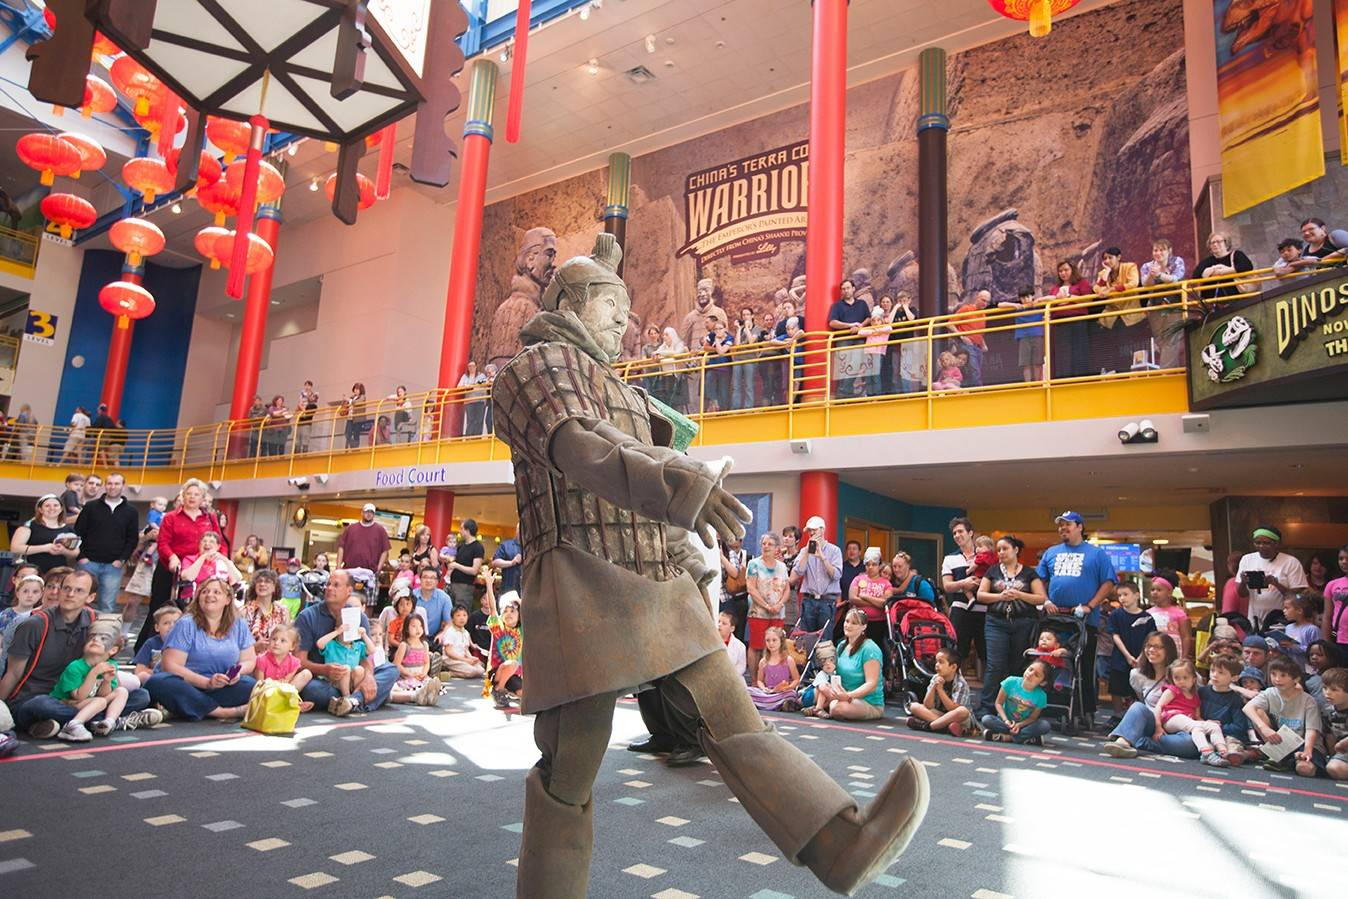 Eight of several thousand unearthed Terra Cotta Warrior statues, created to guard the tomb of China's first emporer, are on display through November at the Children's Museum of Indianapolis.